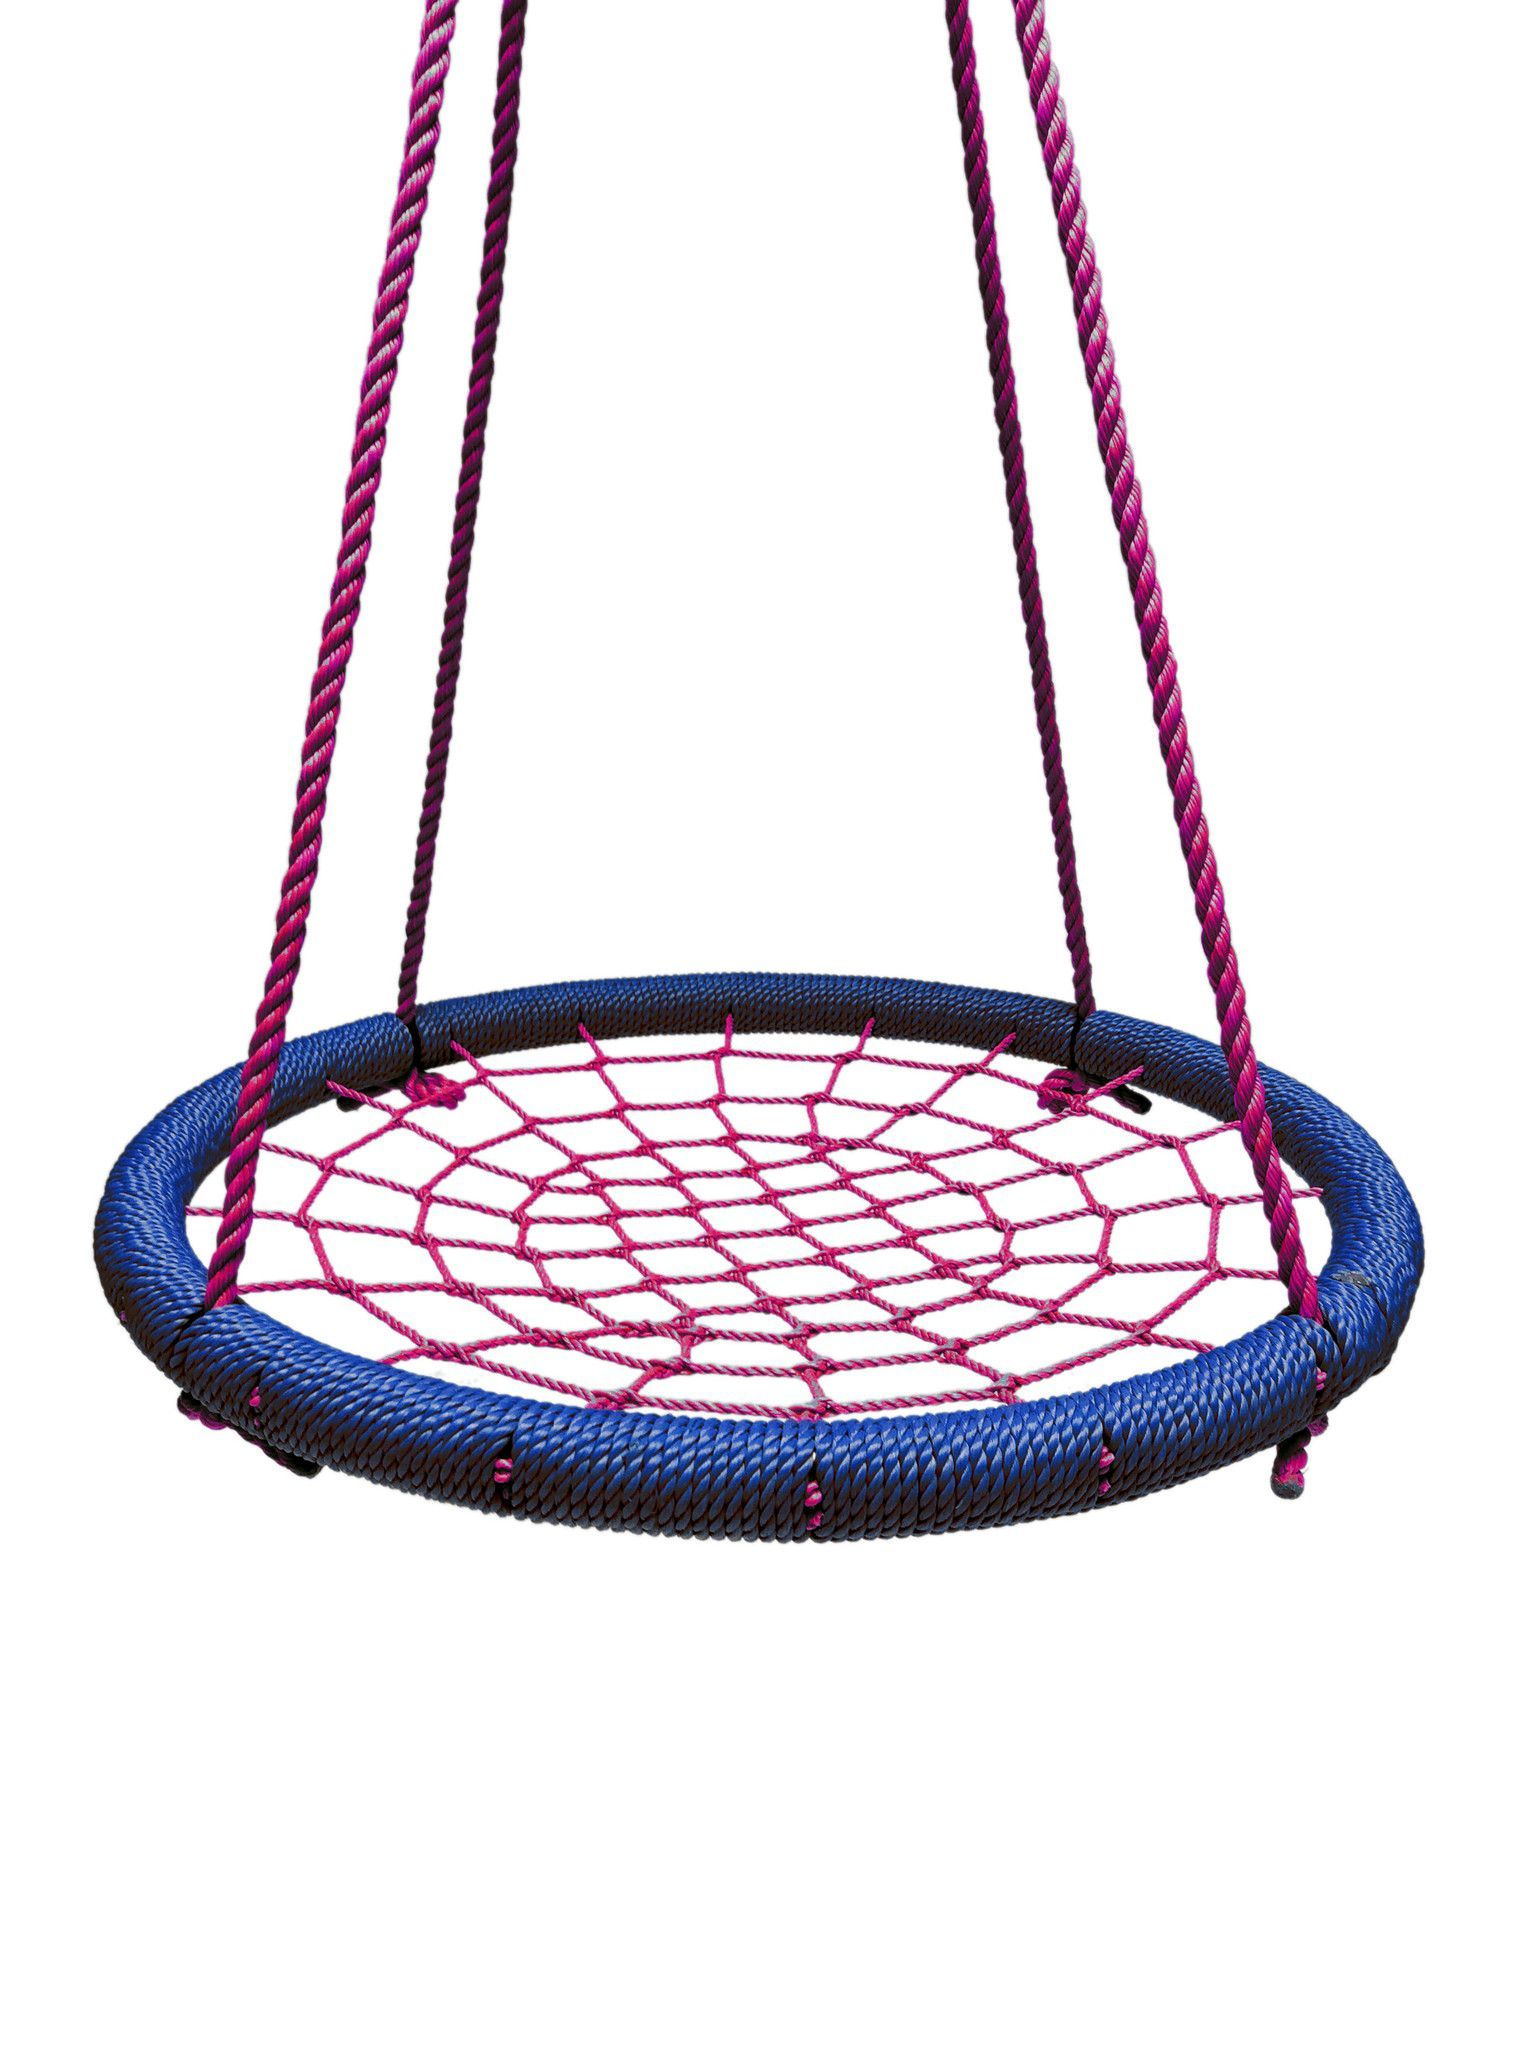 """40"""" Large Round Tree Swing Nets - Navy Blue and Pink-NS-100-NAVPNK STAFF PICK! The Tree Swing is one of our hottest products right now! Multiple color options available! These beautiful, round swing n"""